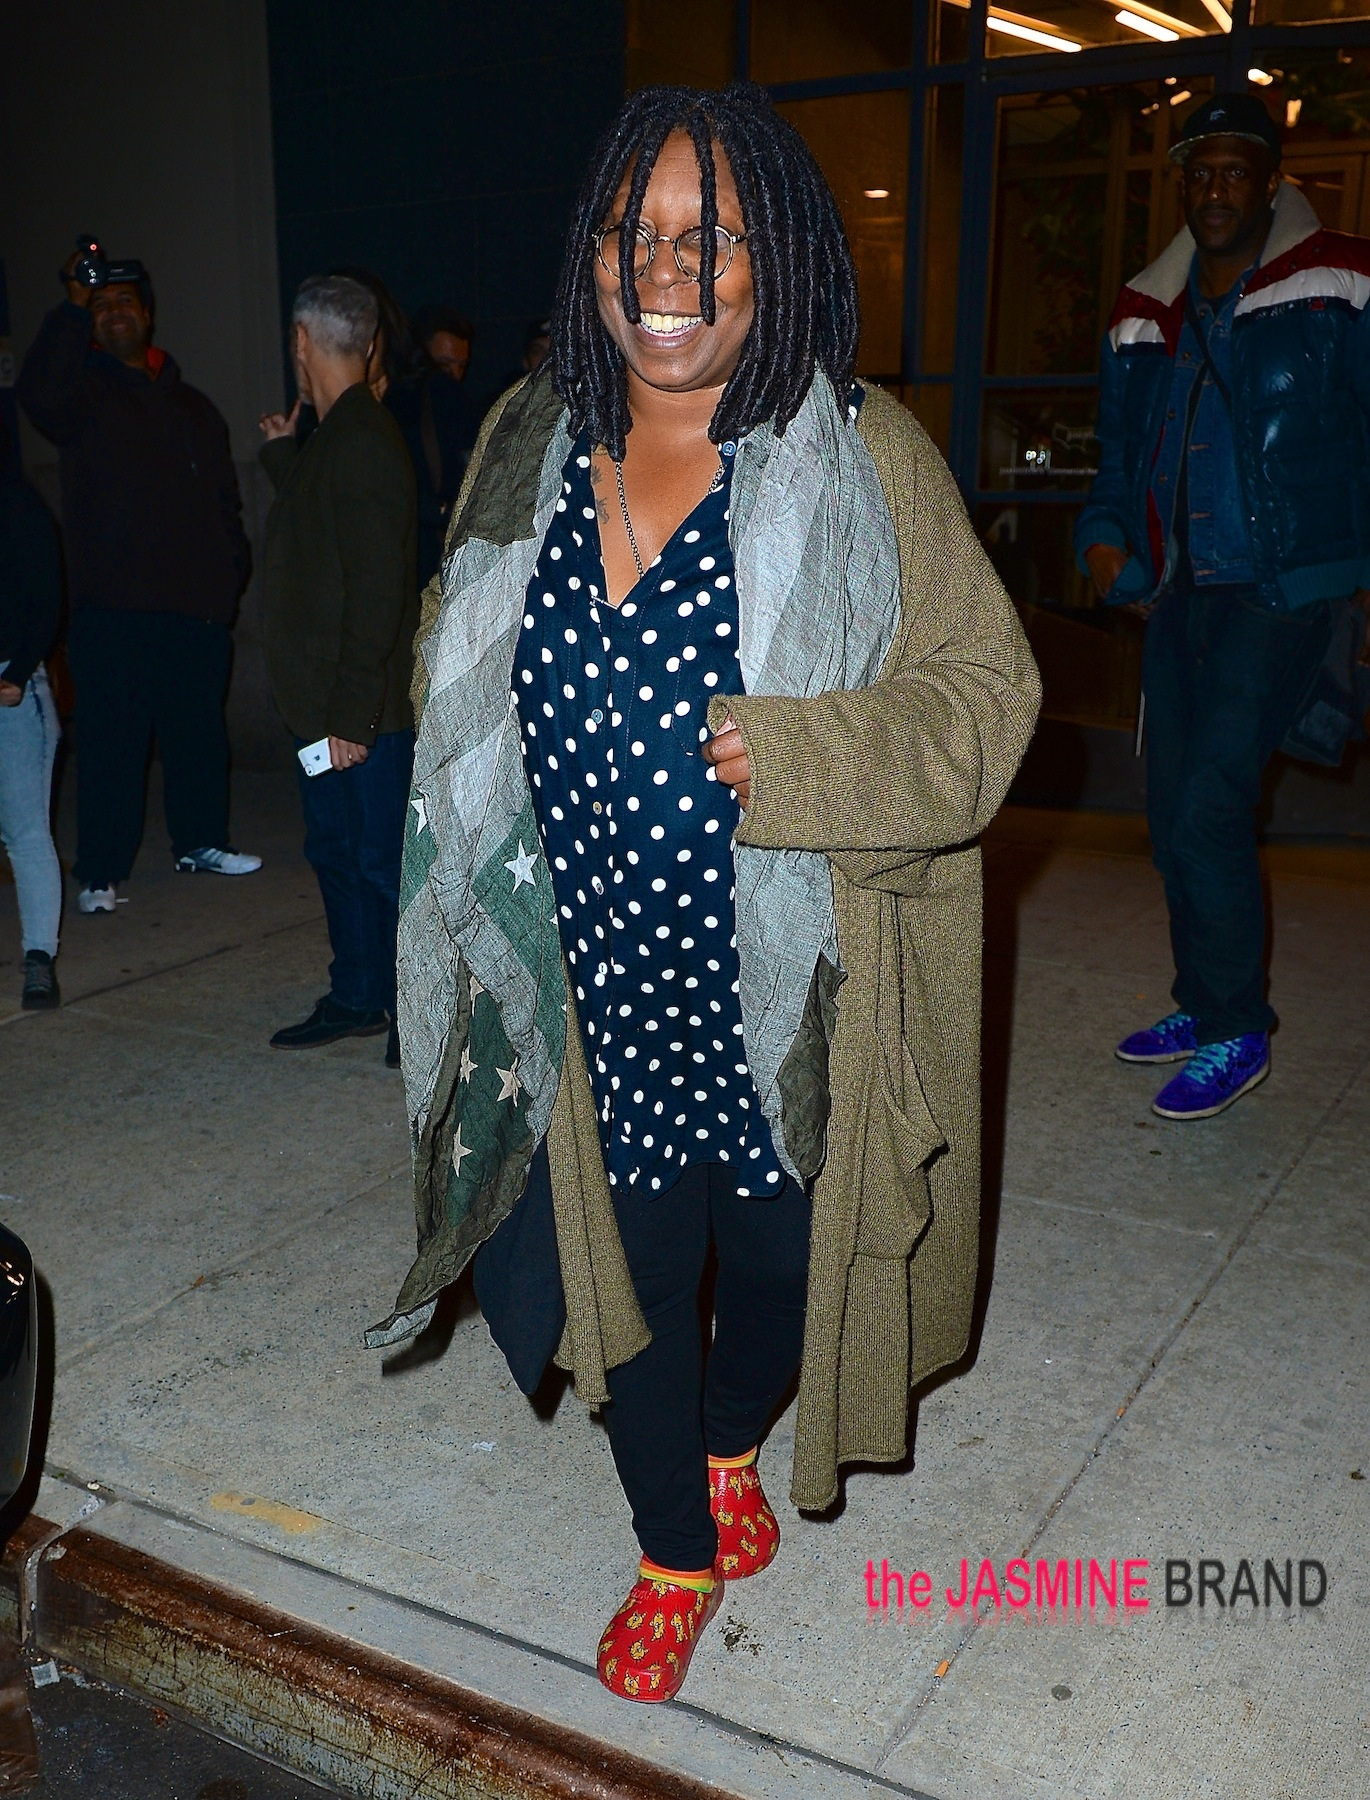 Whoopi Goldberg spotted in NYC wearing red cat clogs and rainbow socks